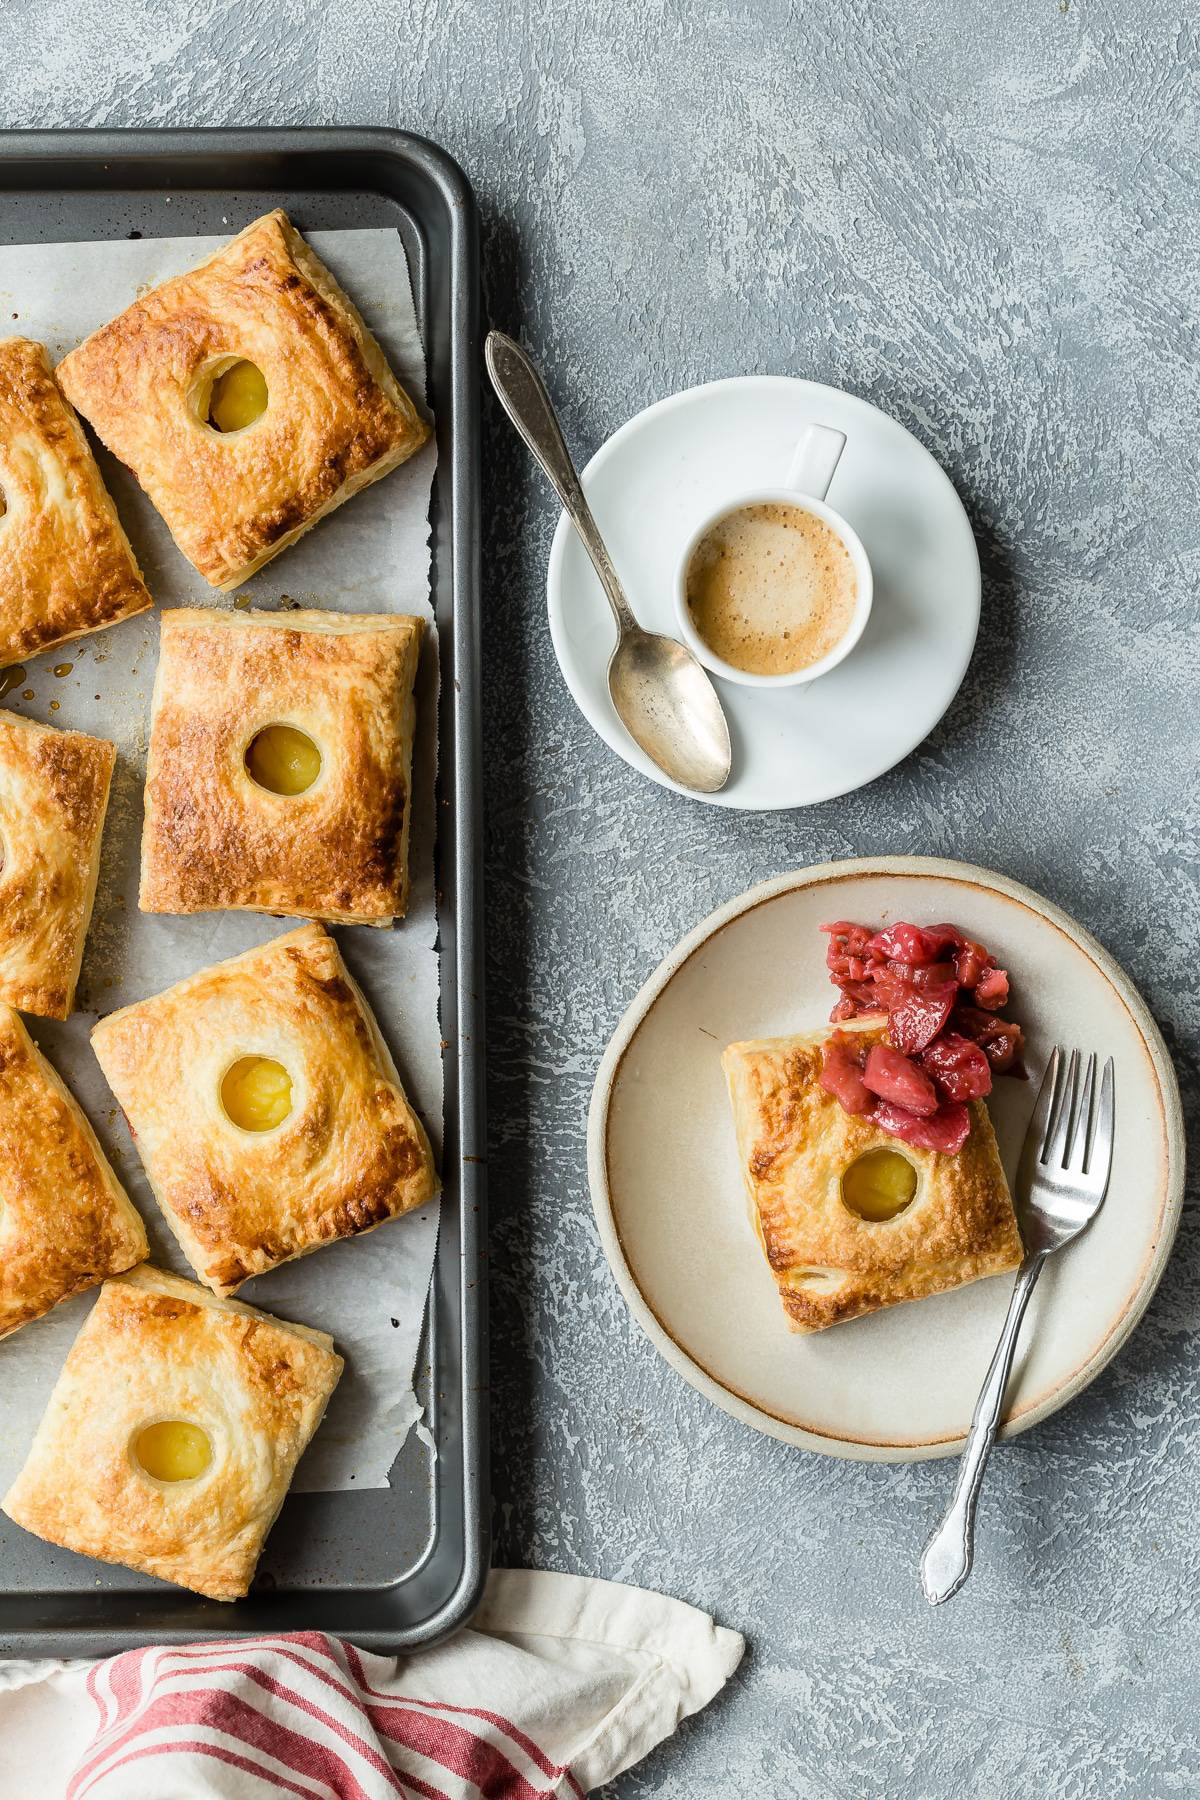 Delicious flaky puff pastry hand pied stuffed with rhubarb and custard! These are perfect for Easter brunch! #handpies #pie #easter #brunch #puffpastry